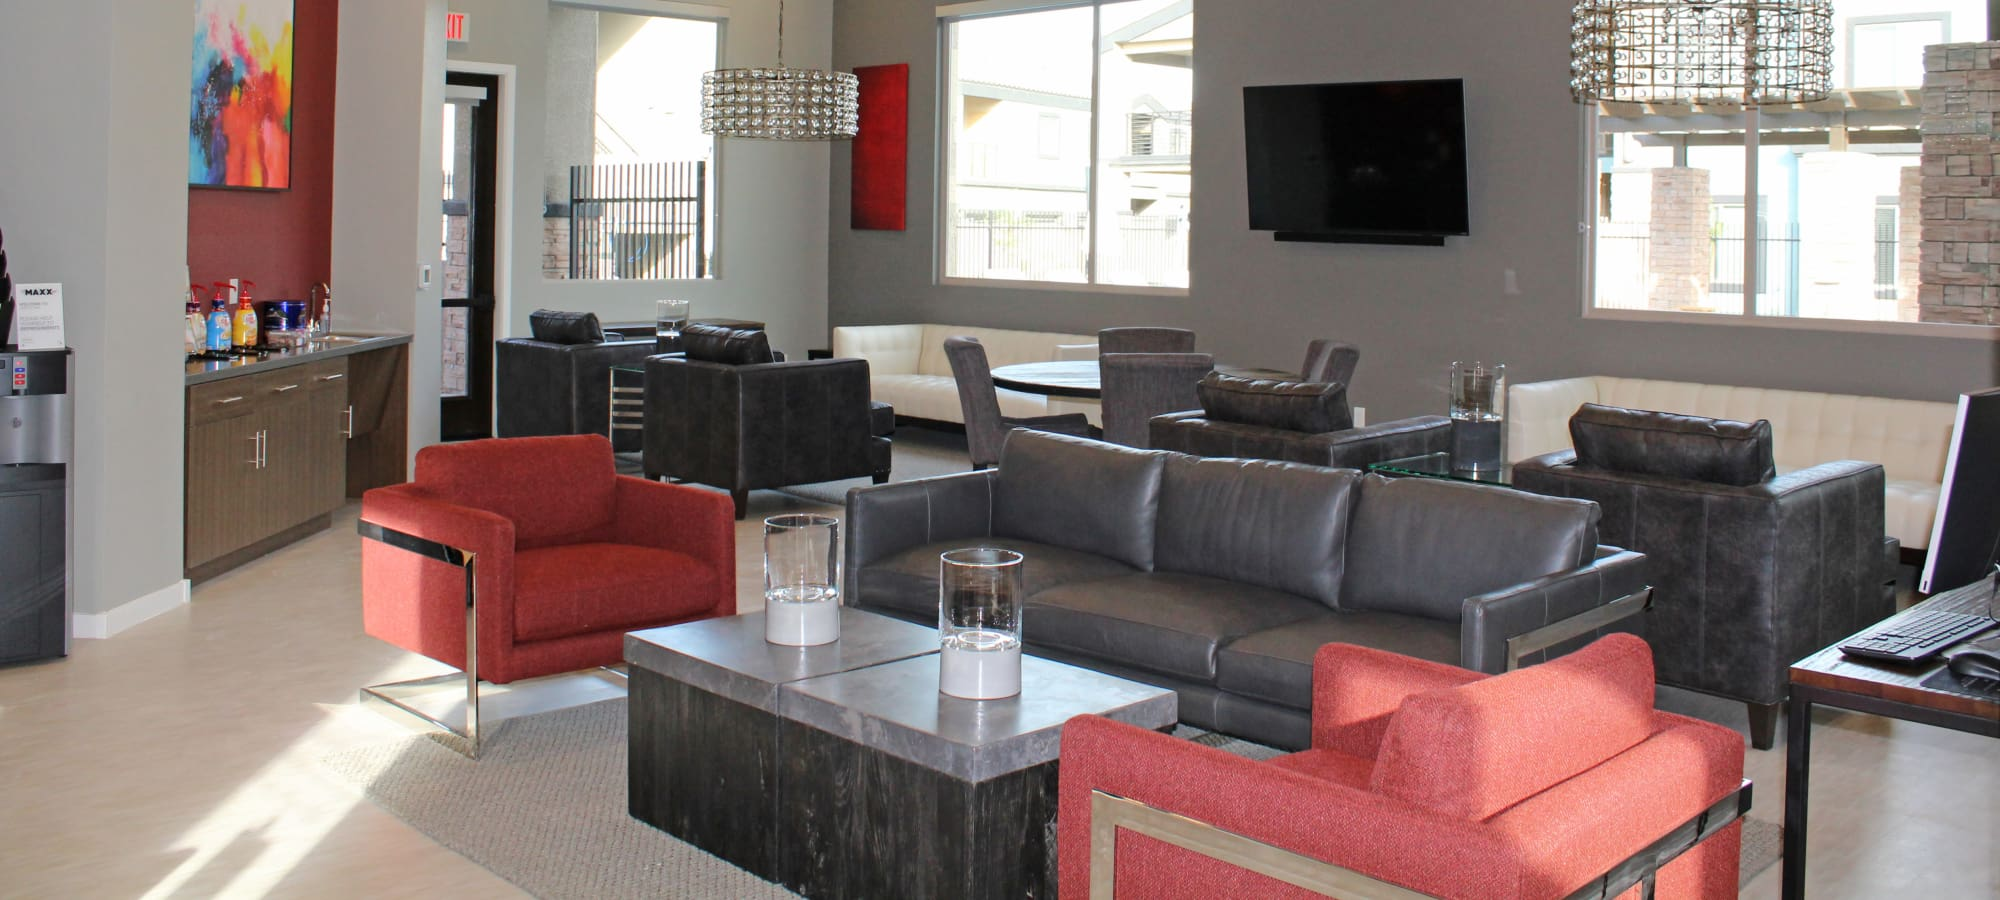 Community lounge at The Maxx 159 in Goodyear, Arizona